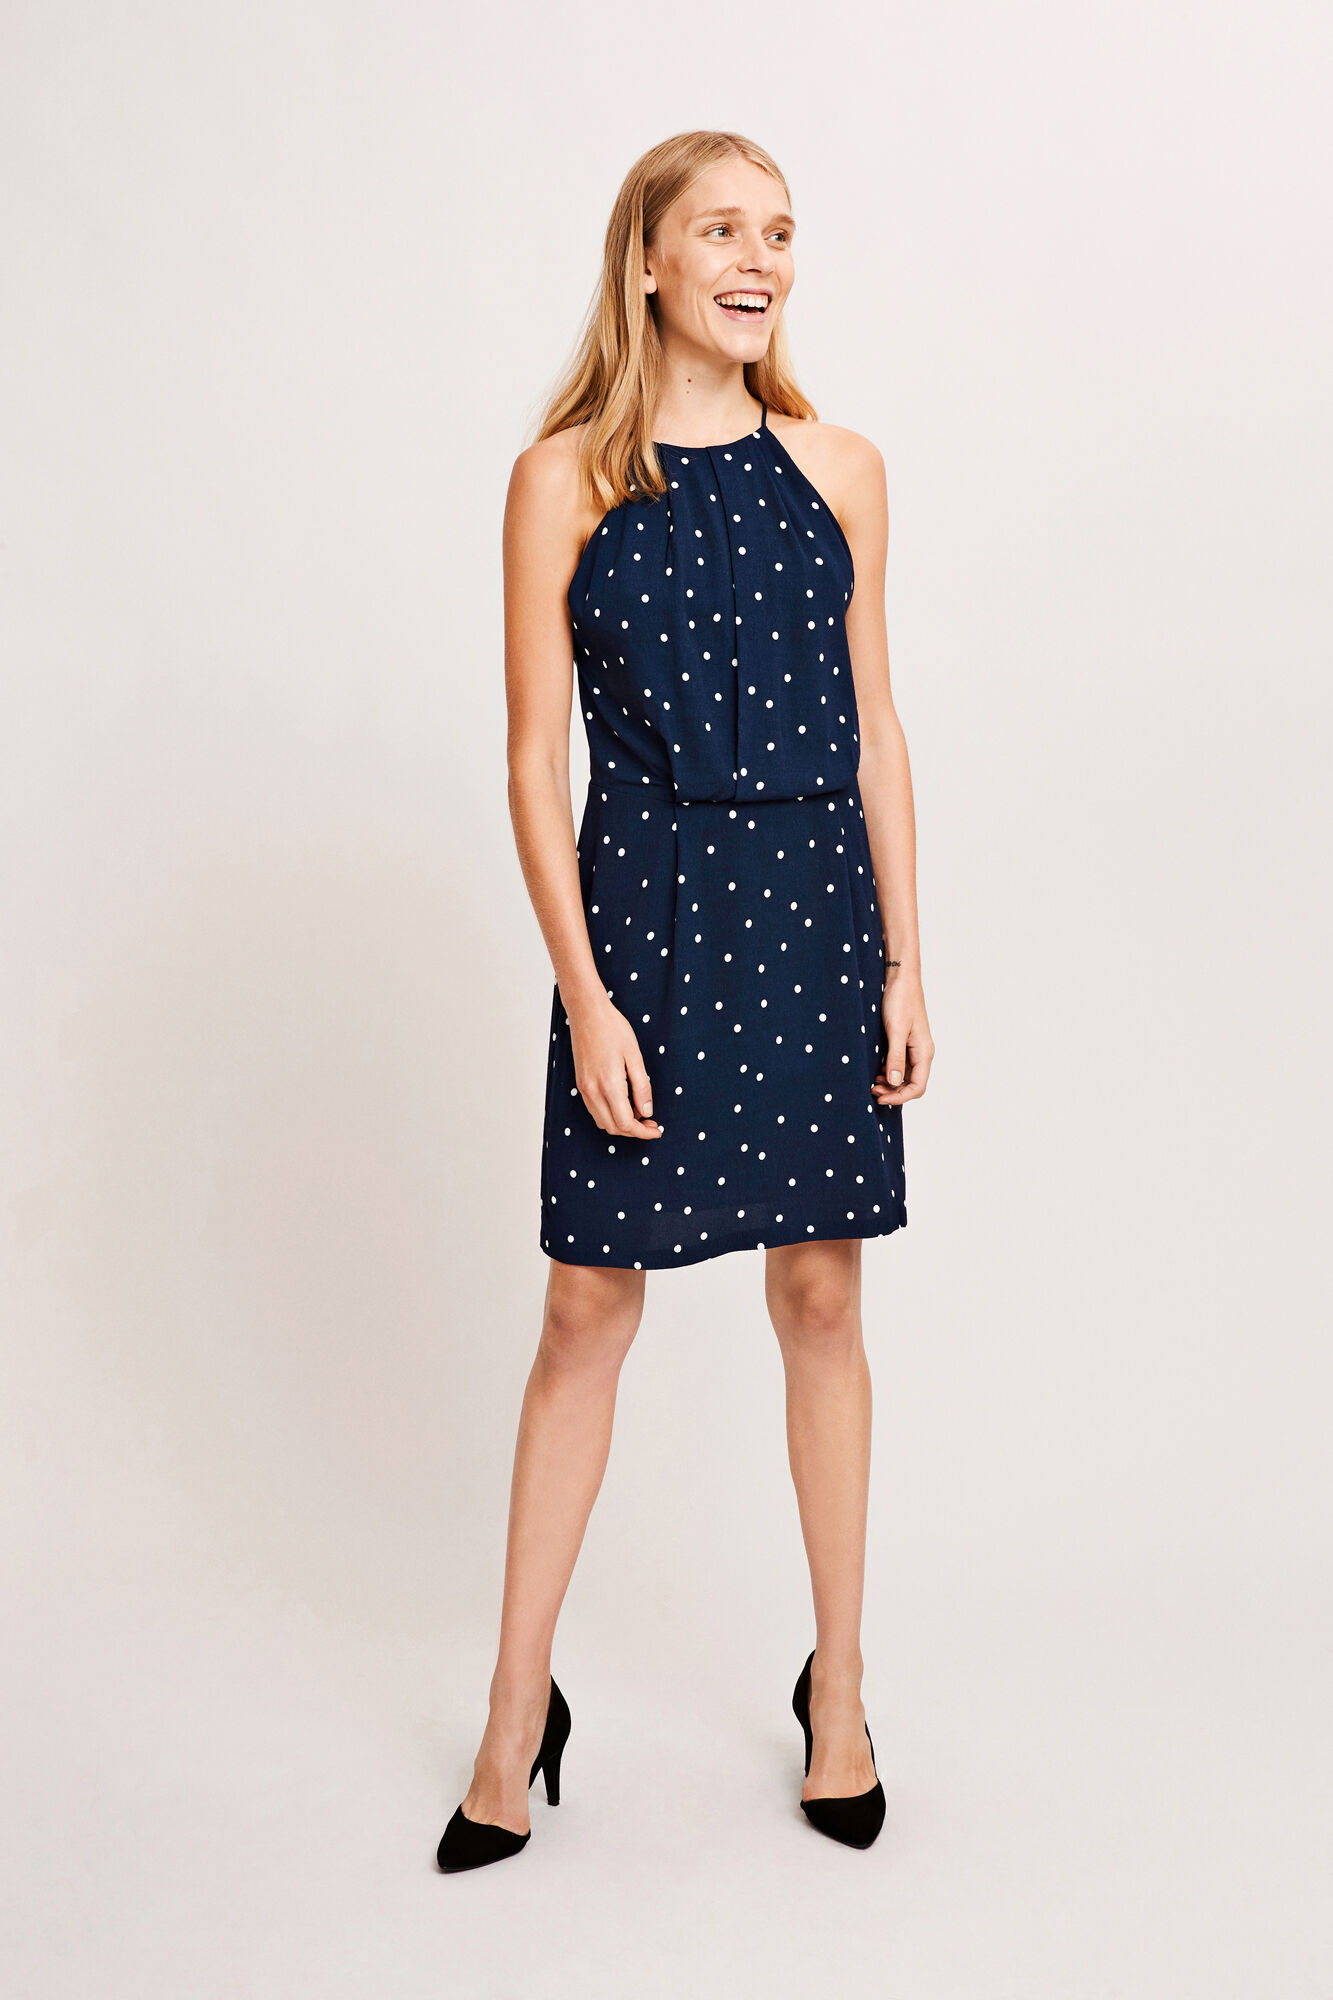 Willow short dress aop 5687, NAVY DOTTED AOP